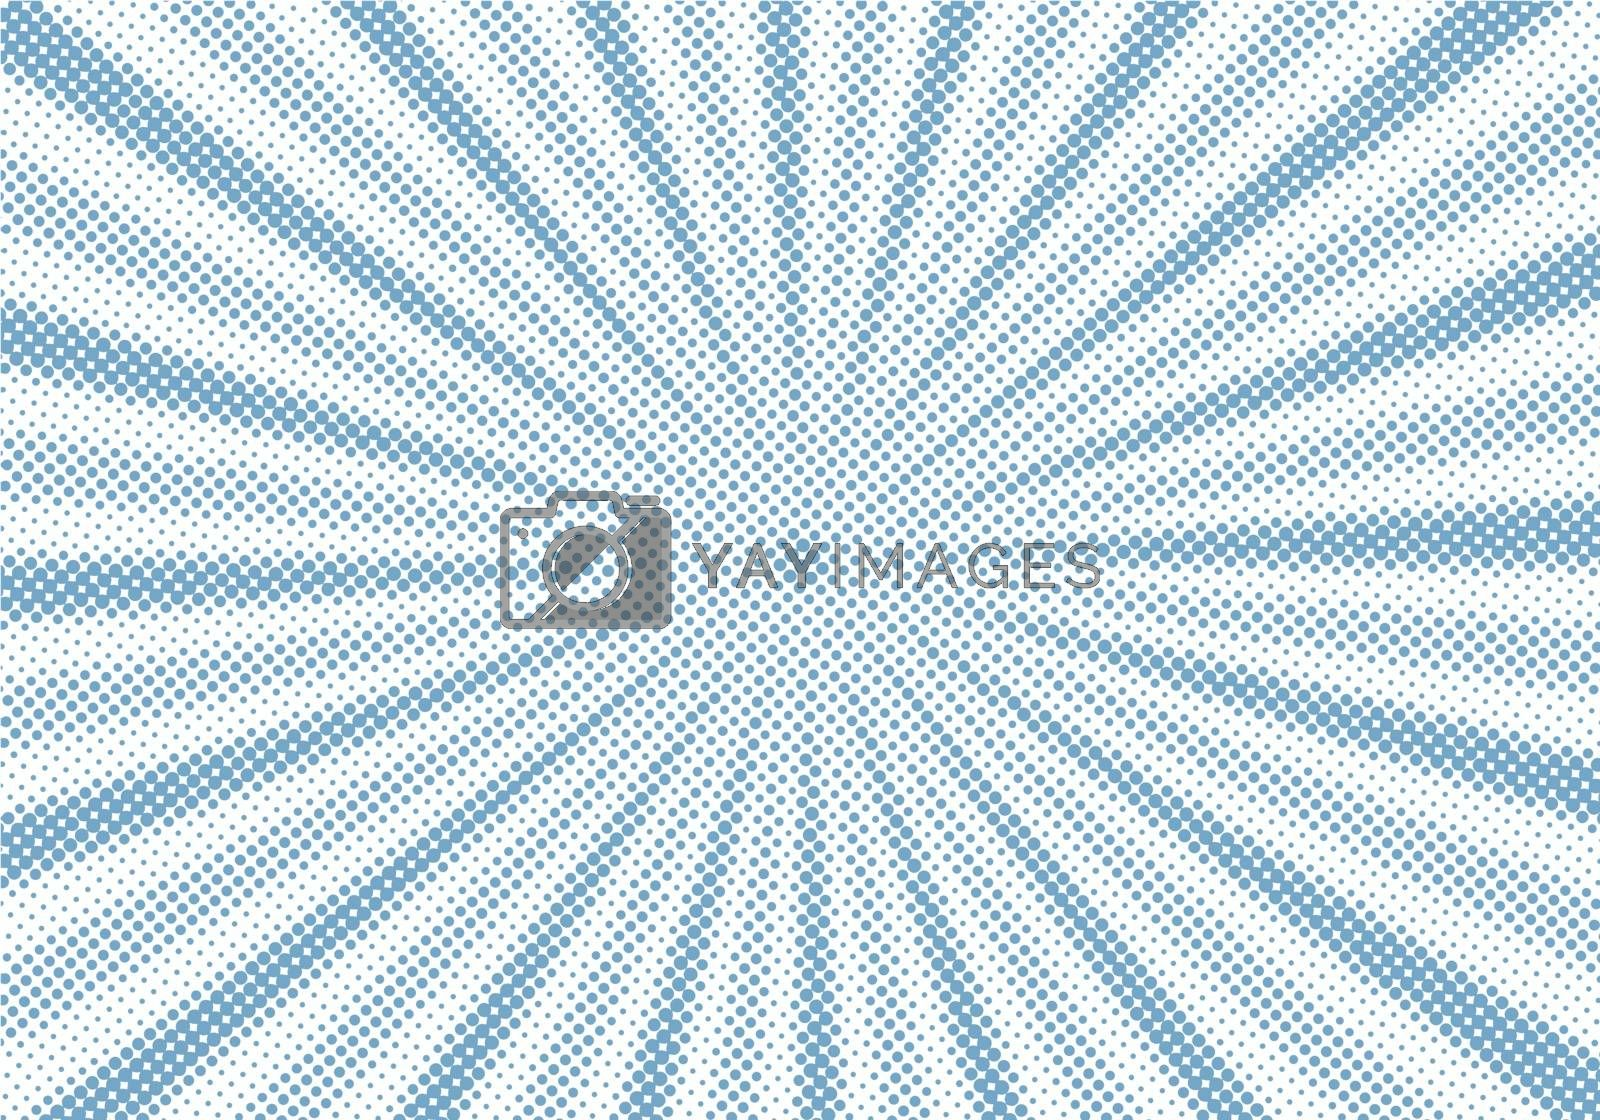 Retro blue sunburst and rays comic cartoon halftone style background. Abstract vintage grunge with sunlight. Vector illustration